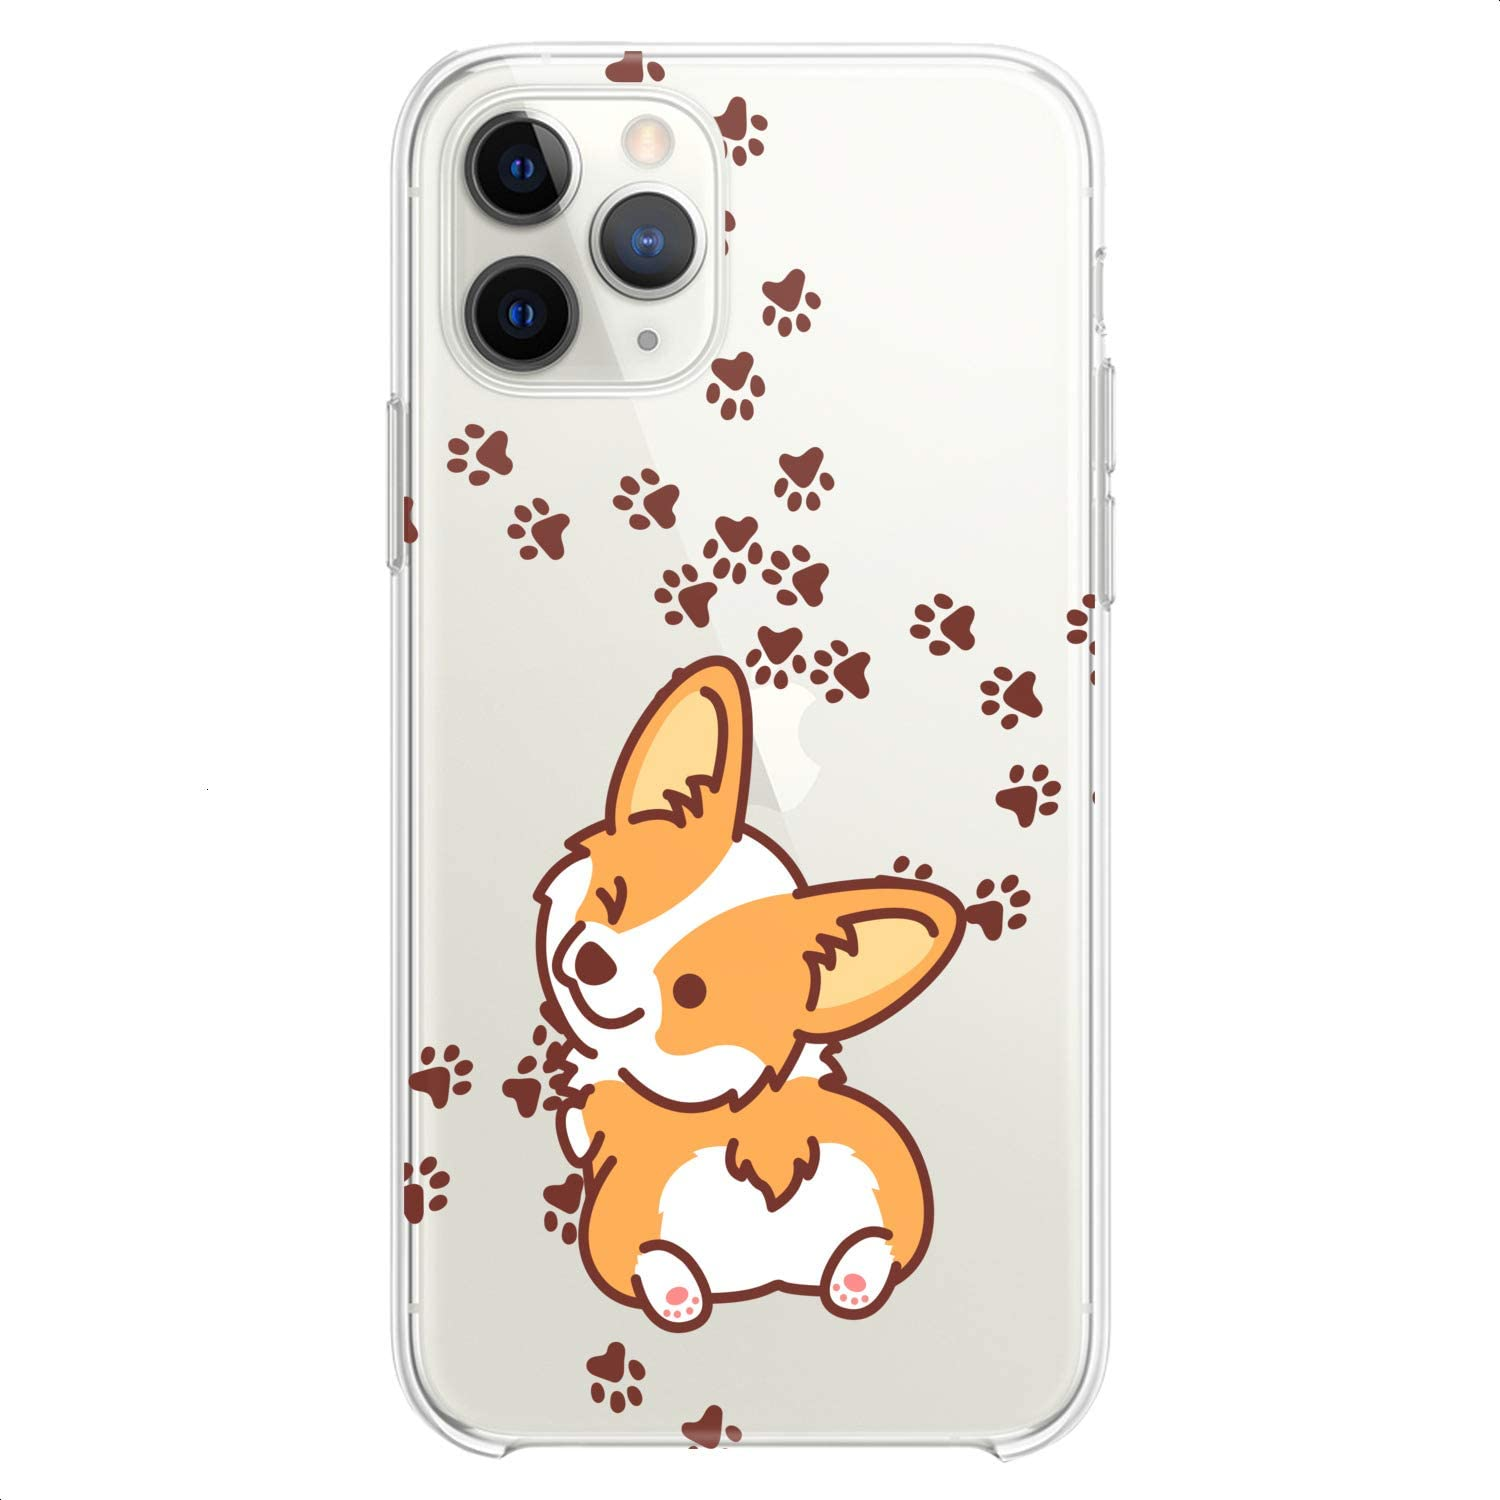 Cavka TPU Case Replacement for Apple iPhone 12 Mini 5G 11 Pro Xs Max X 8 Plus Xr 7 SE Design Corgi Kawaii Cute Funny Animals Teen Print Dog Puppy Wink Flexible Silicone Slim fit Clear Soft Cute Paws